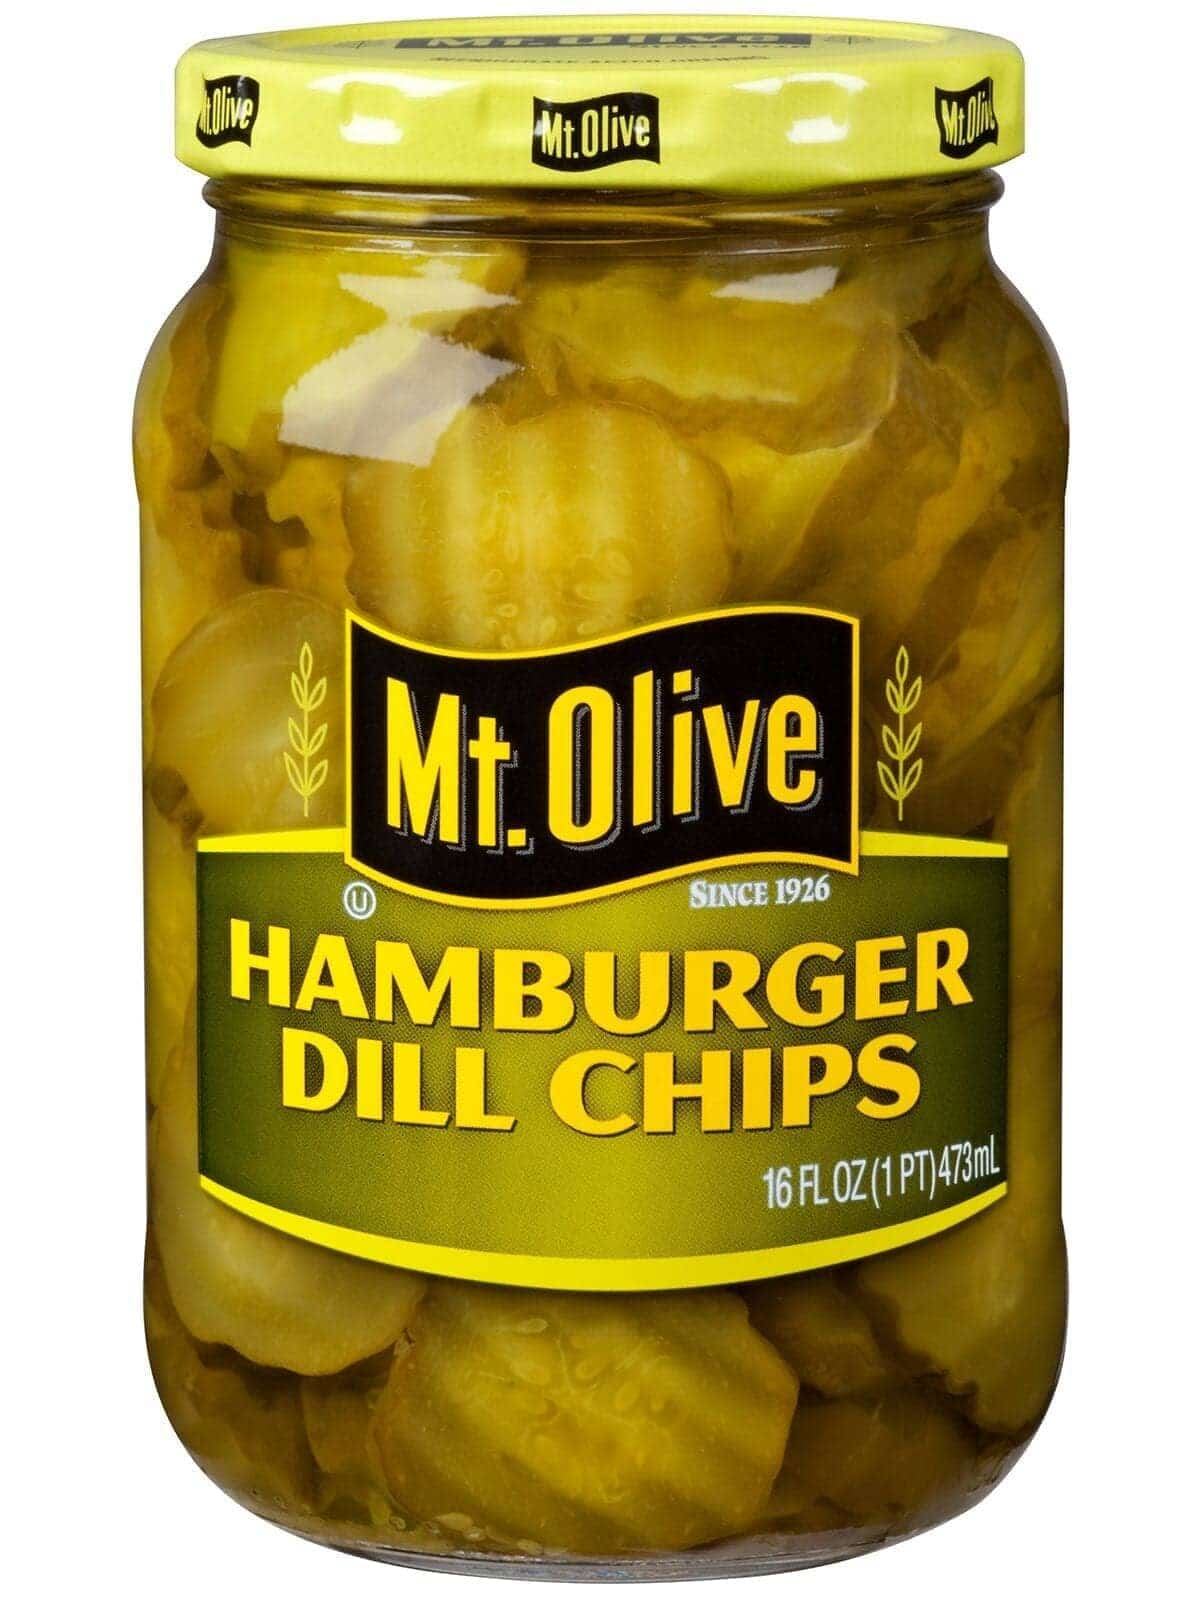 Hamburger Dill Chips